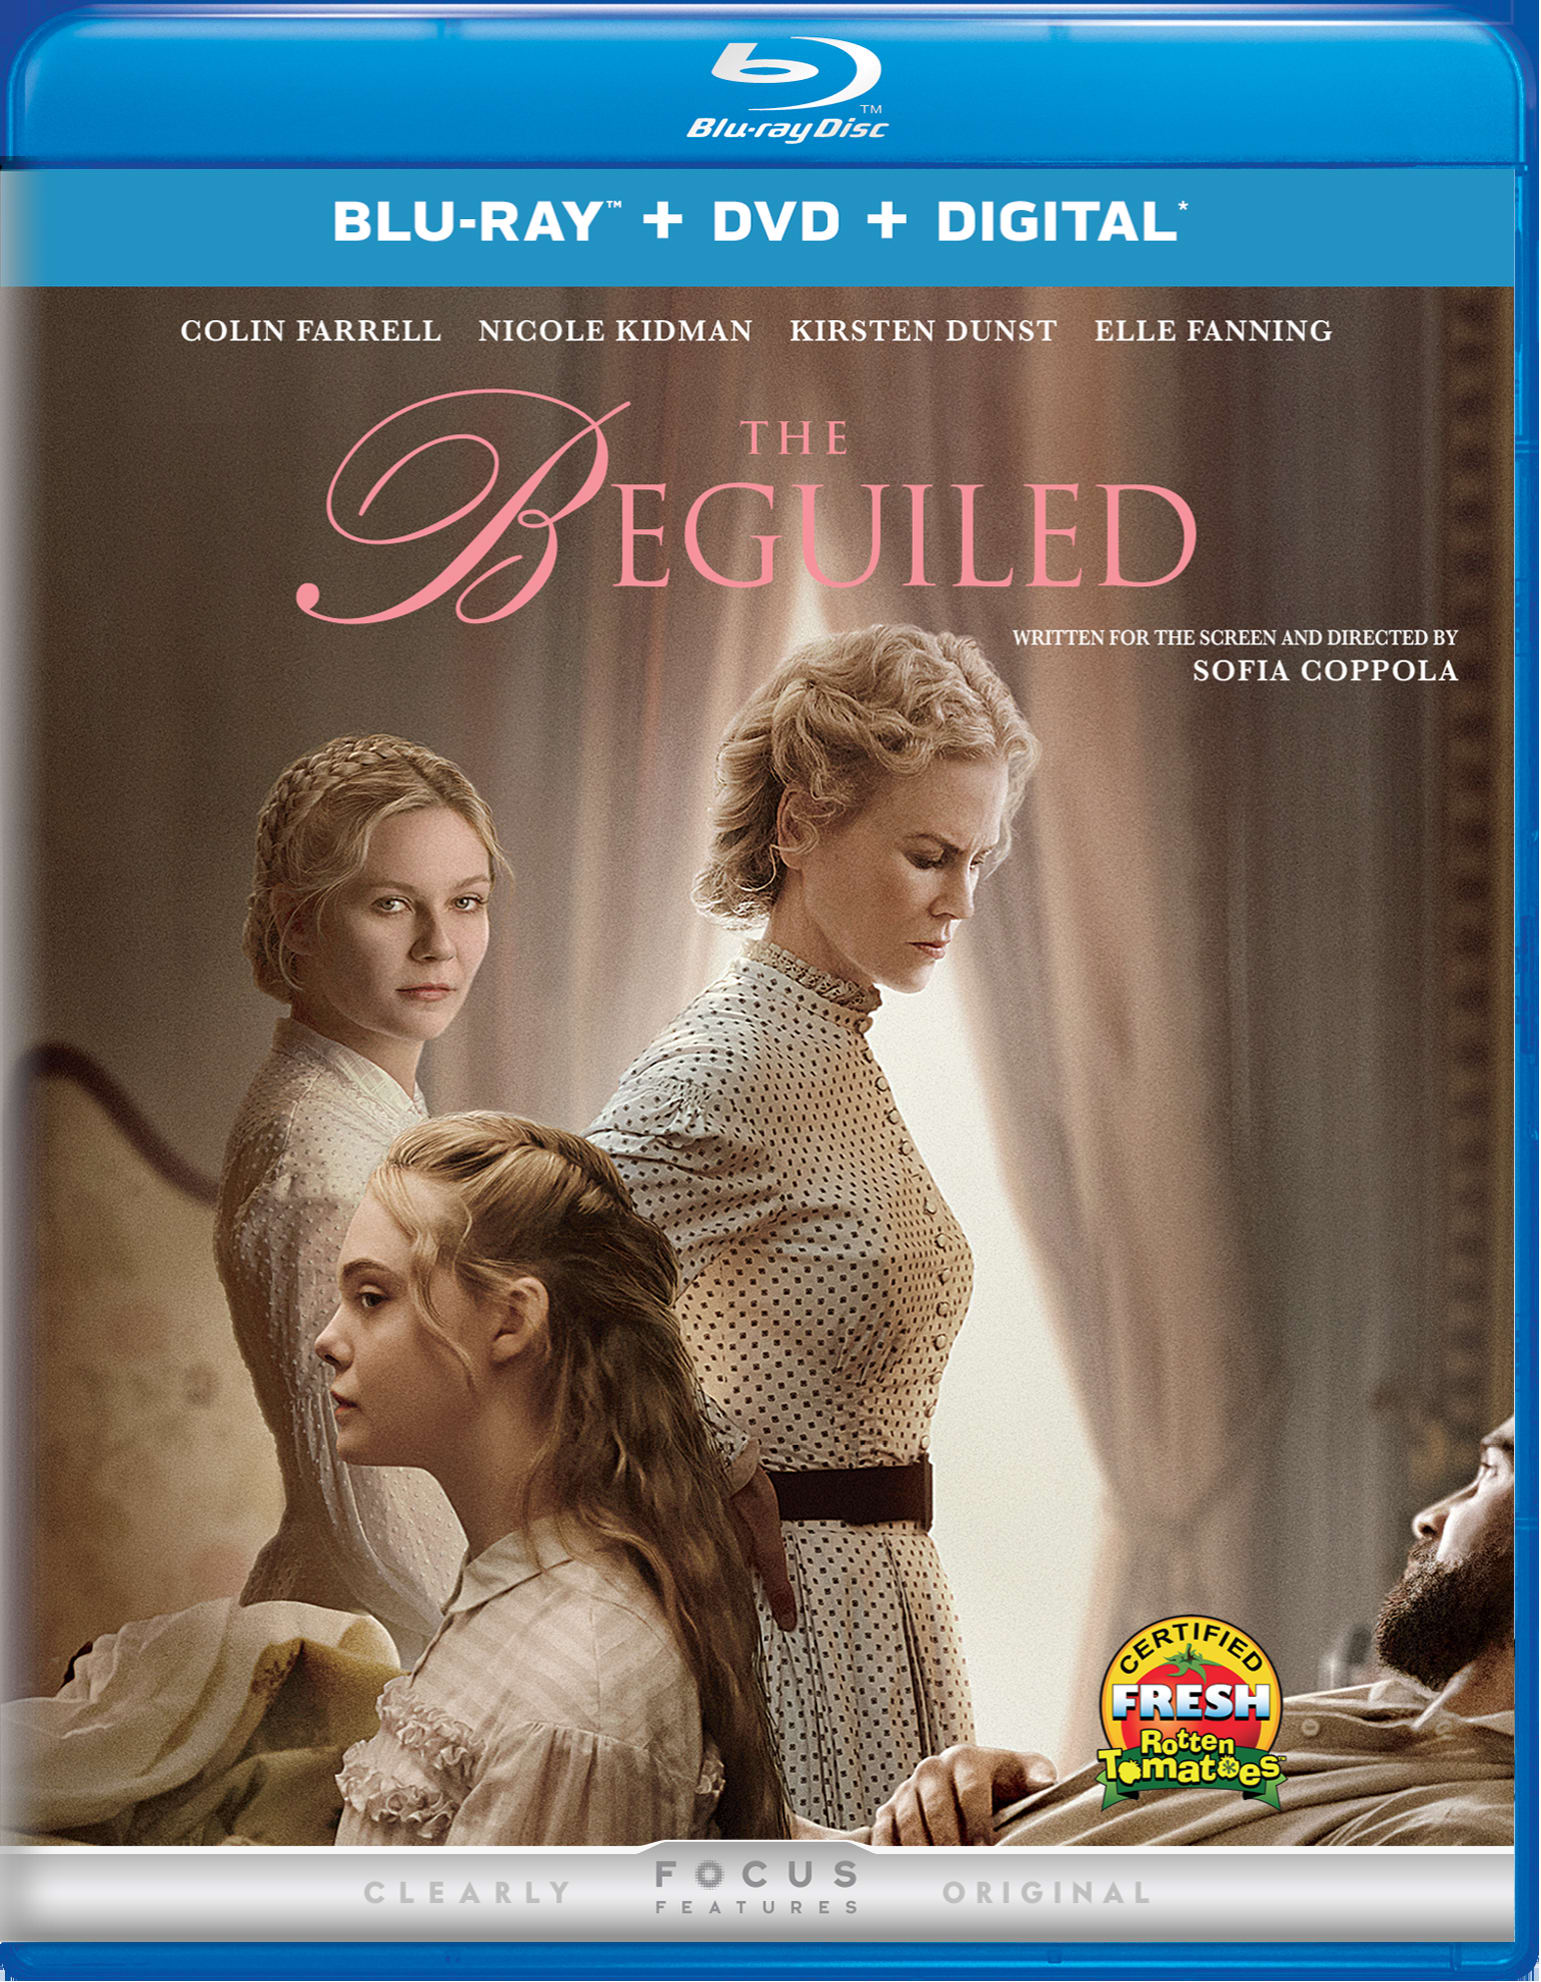 The Beguiled (2017) (DVD + Digital) [Blu-ray]